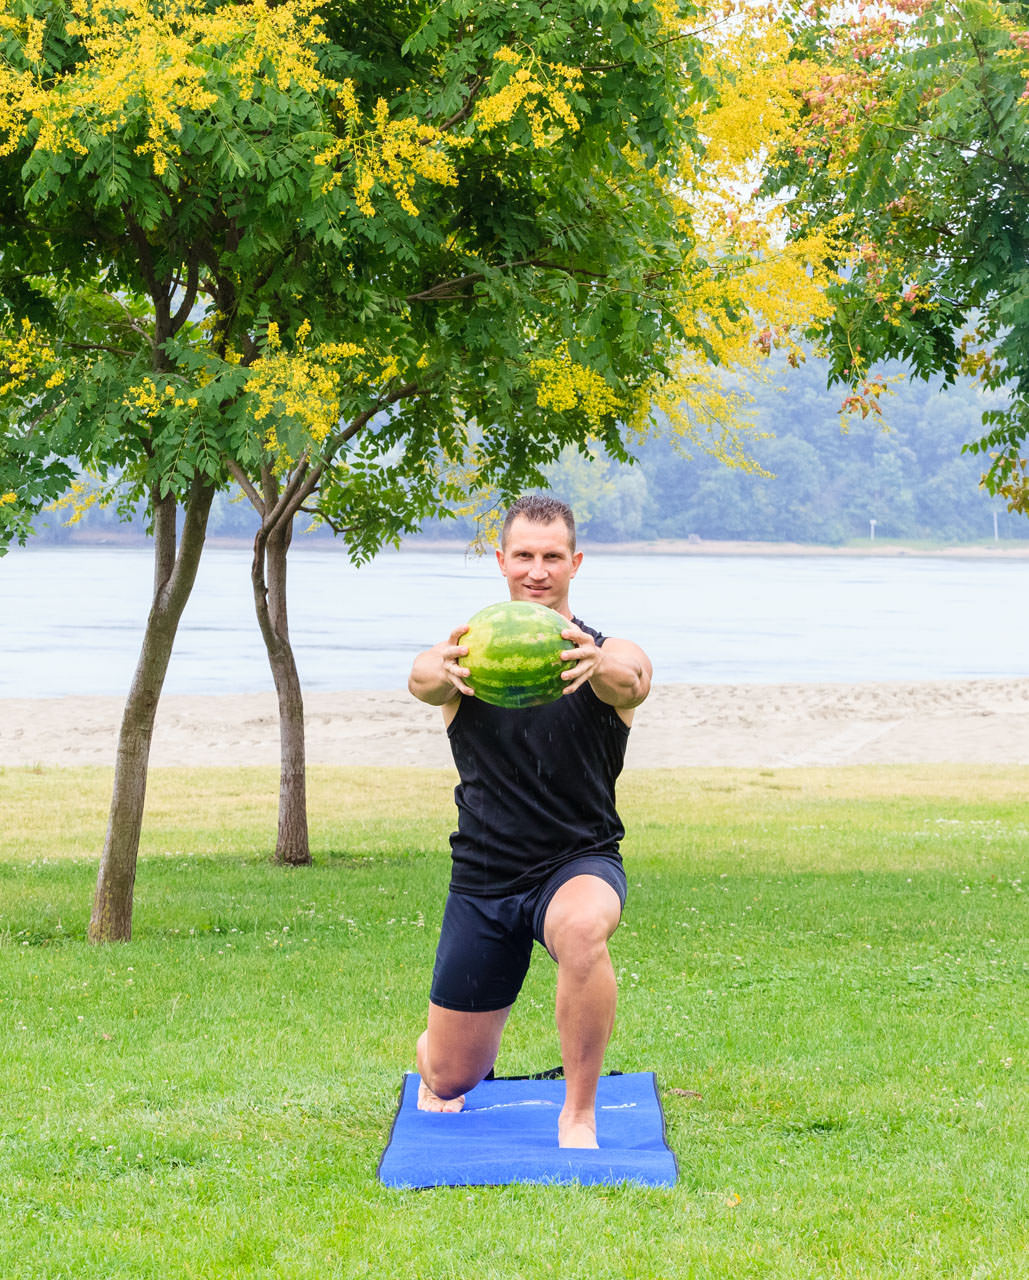 Watermelon Lunge with Torso Rotation frame #4